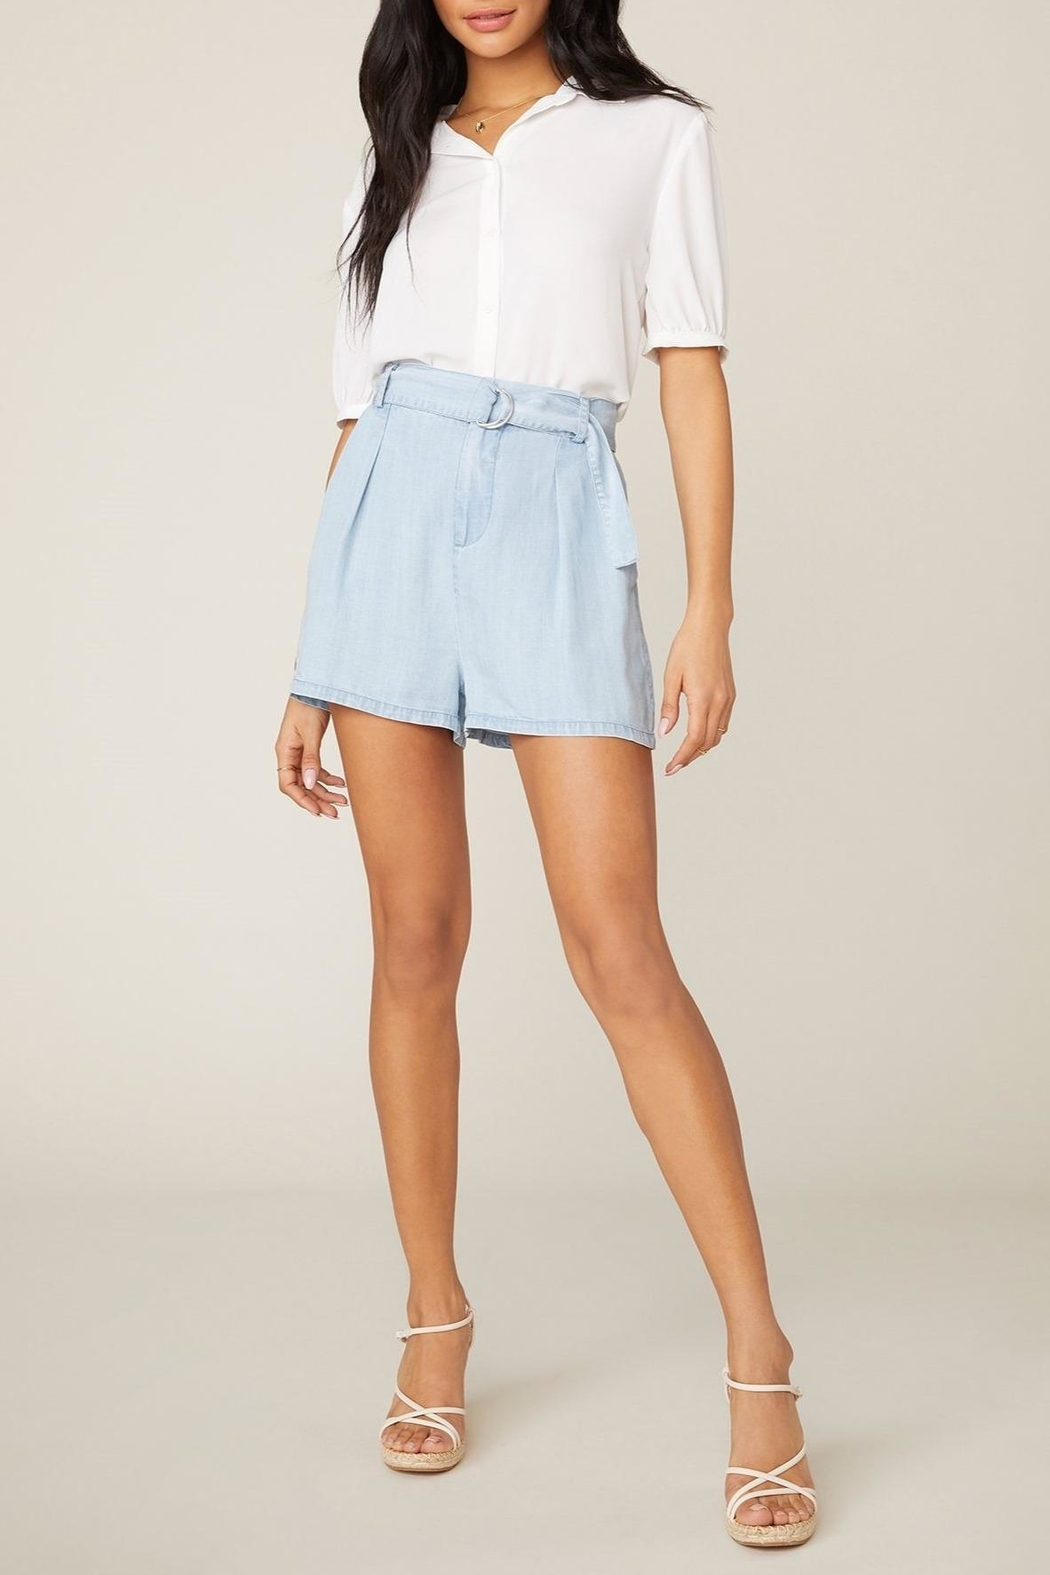 BB Dakota Belt-It-Up Shorts - Front Full Image